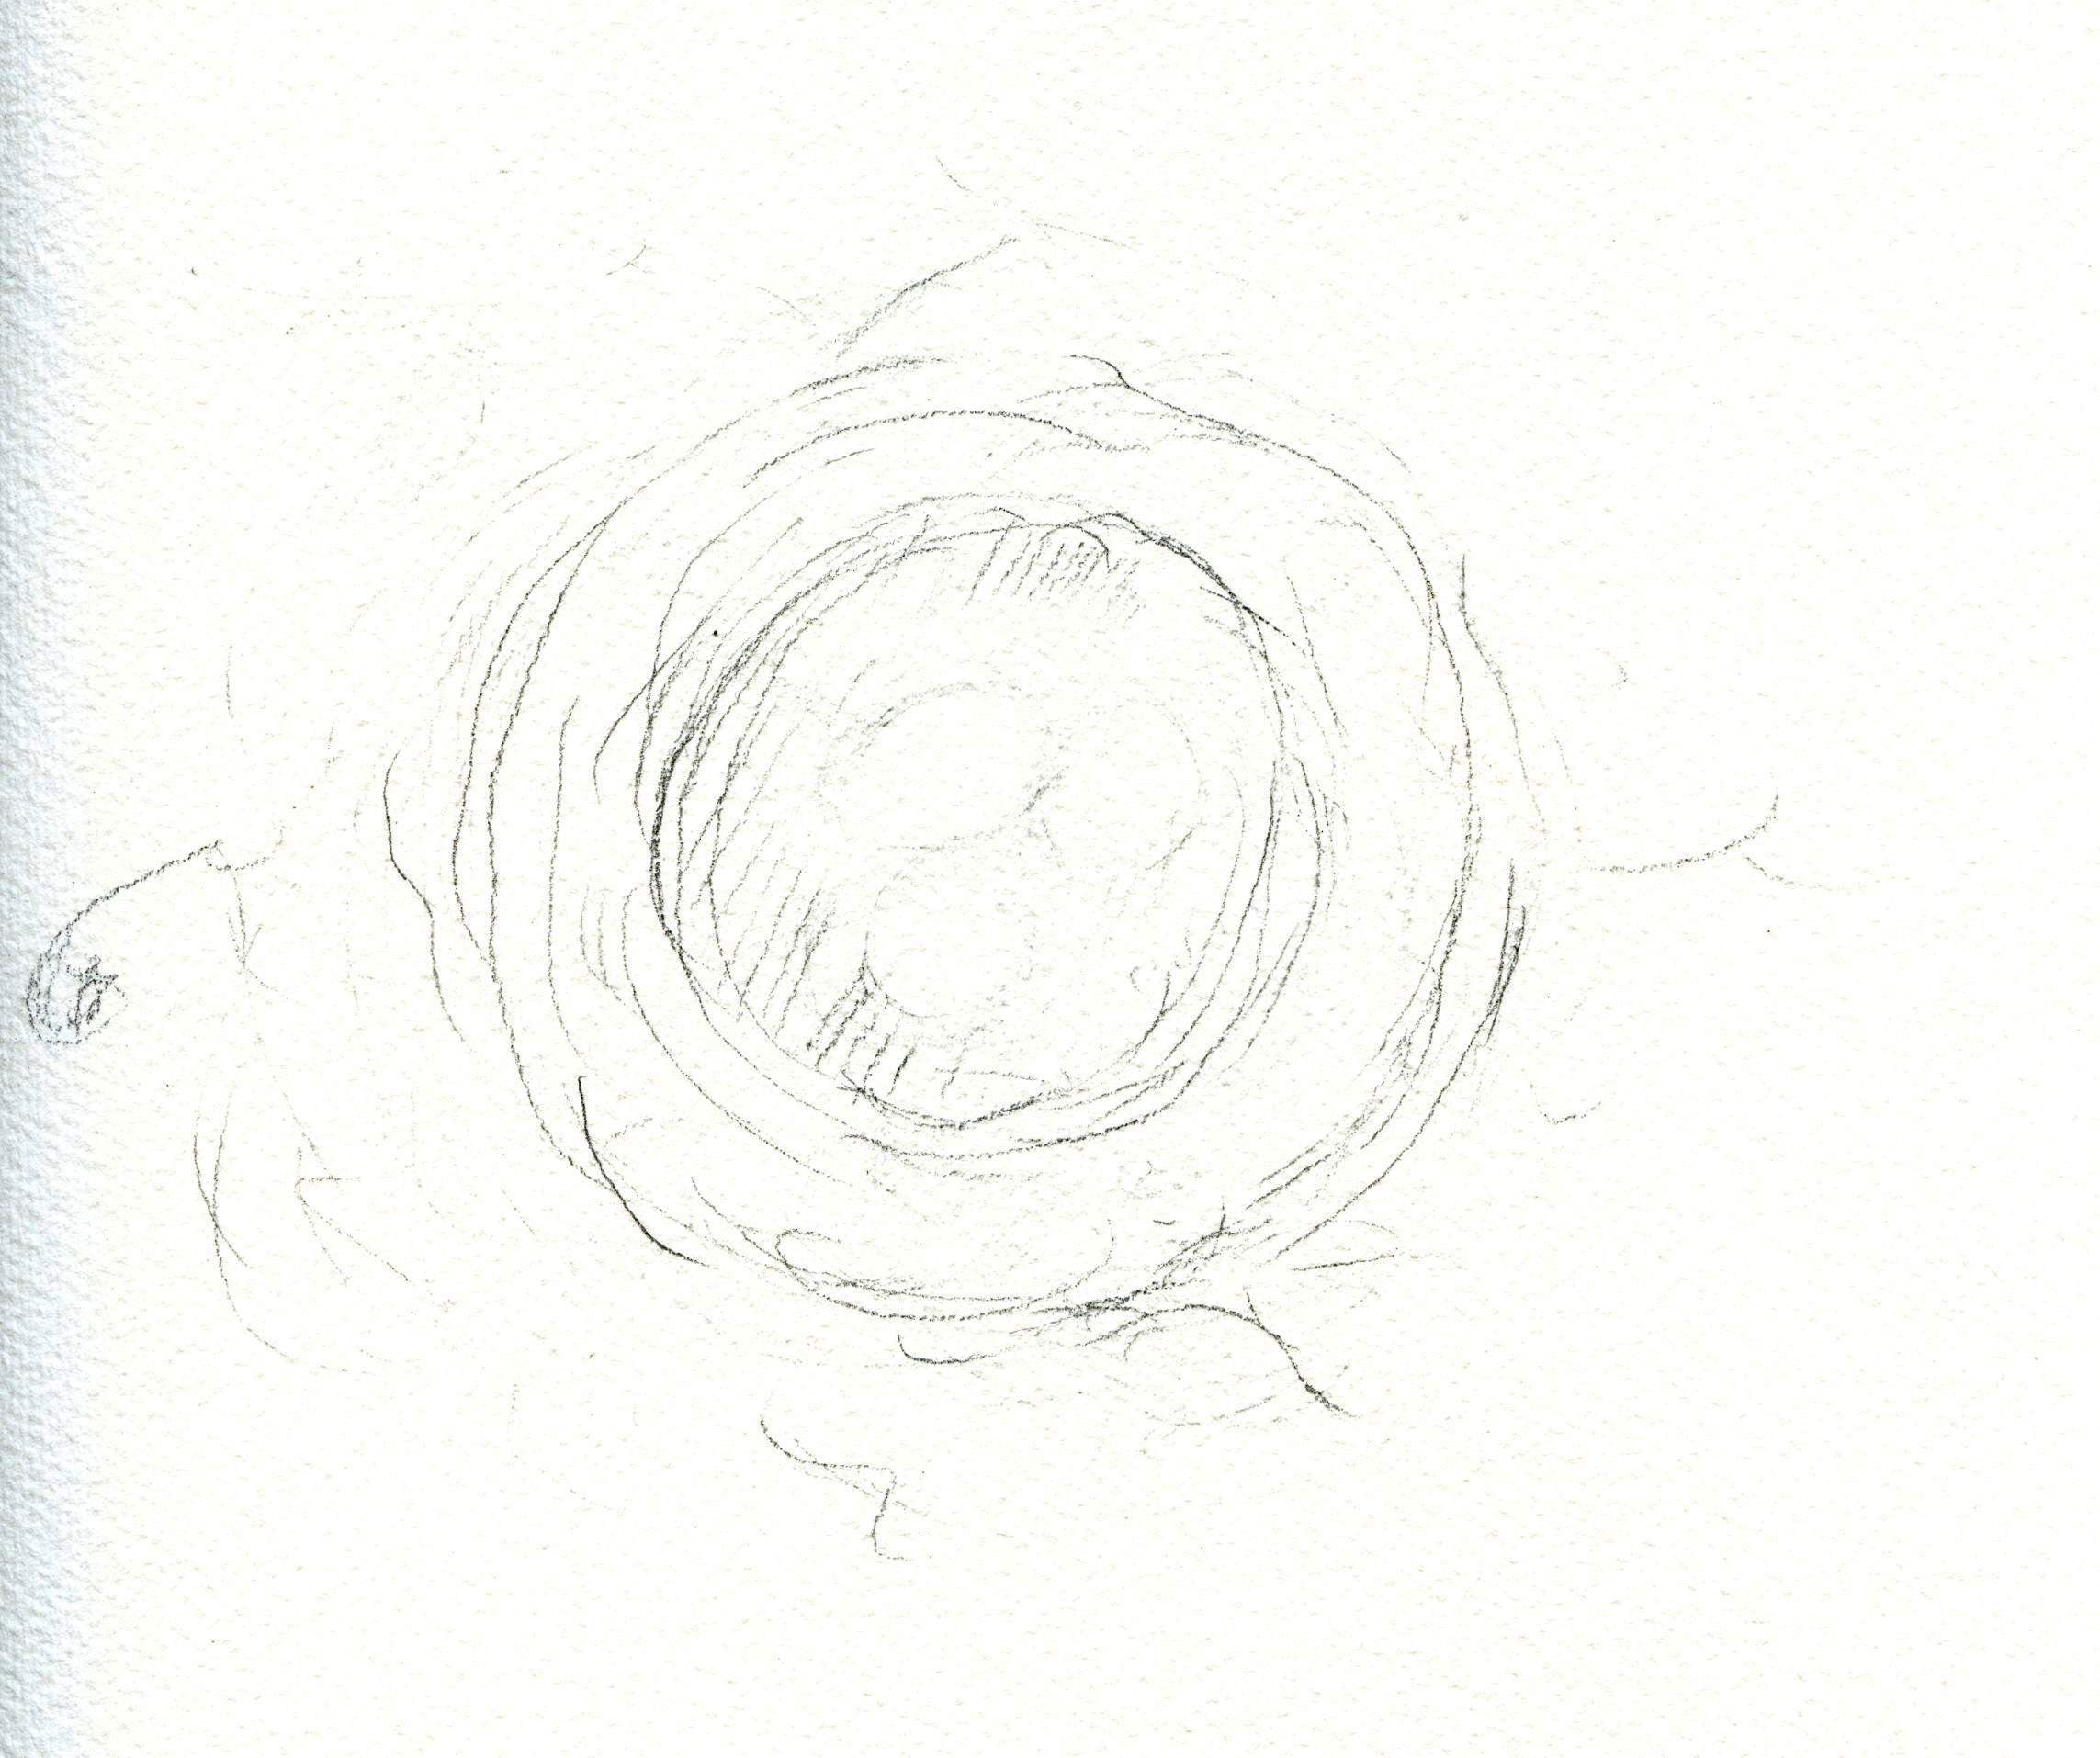 sketch of bird's nest